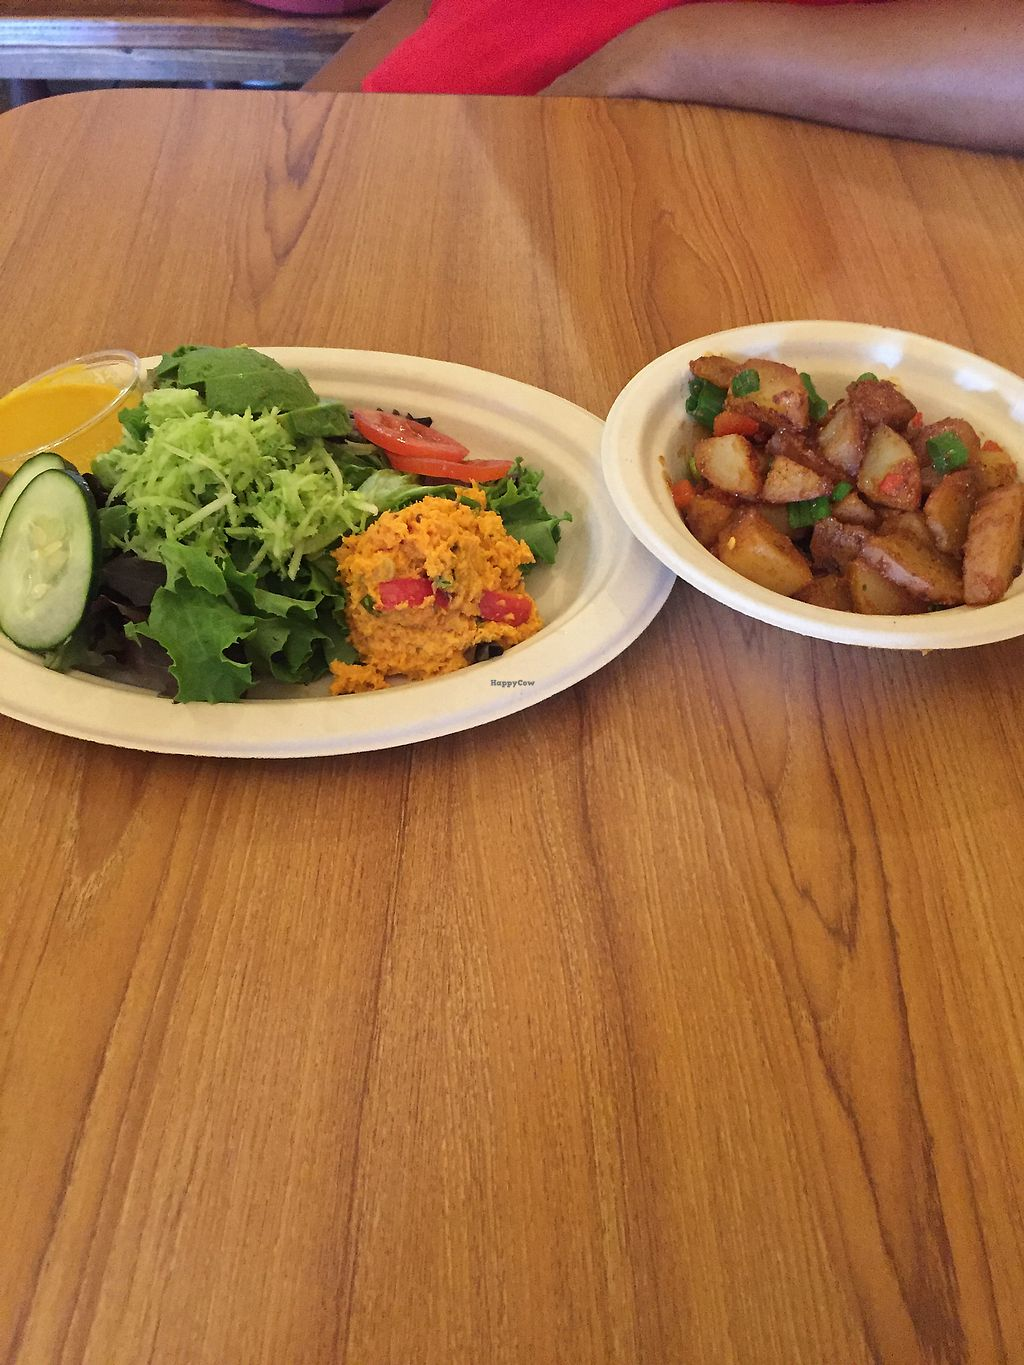 """Photo of Stuff I Eat  by <a href=""""/members/profile/R-MV"""">R-MV</a> <br/>Side Salad with carrot un-tuna; Cottage Fried Potatoes <br/> August 14, 2017  - <a href='/contact/abuse/image/14920/292462'>Report</a>"""